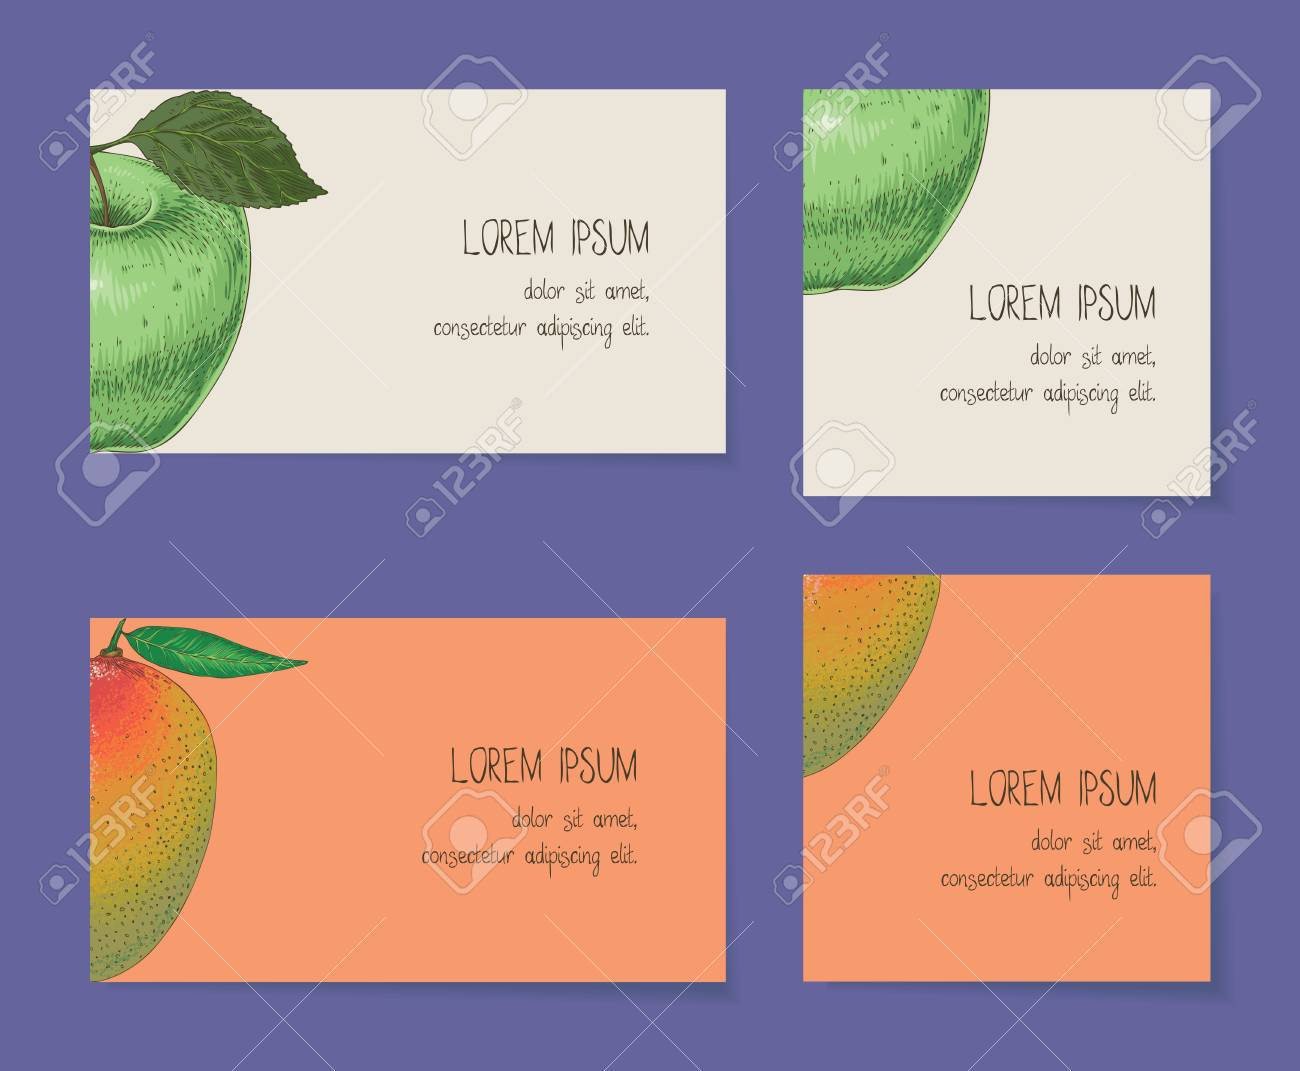 Fruit Business Cards Template Collection On A Violet Background